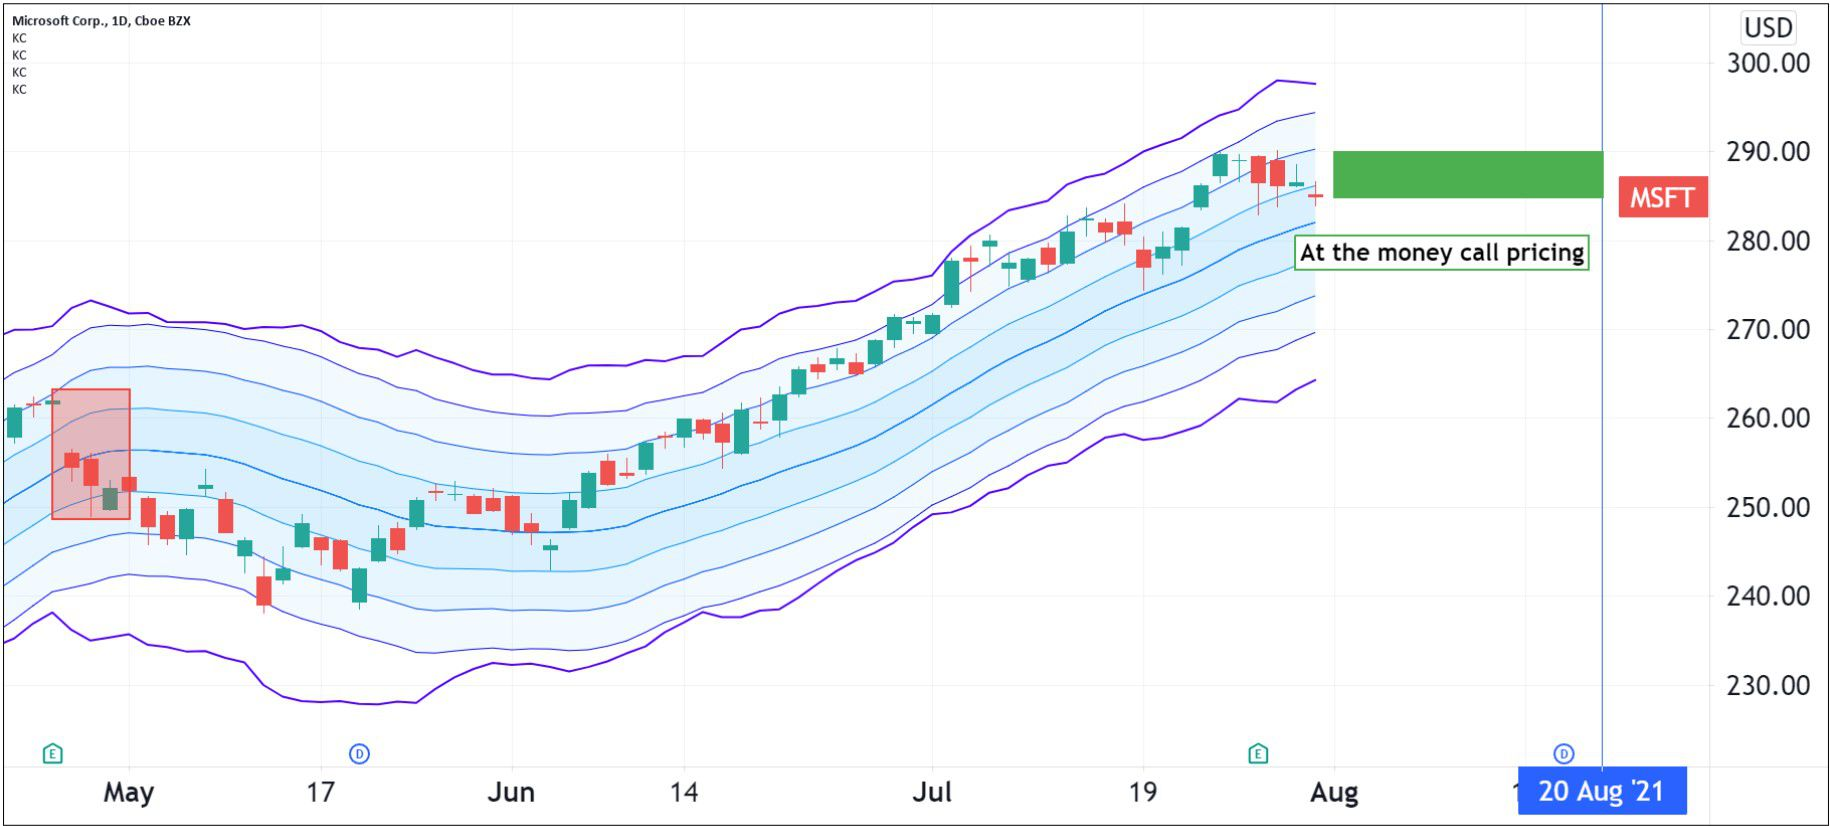 Option pricing for Microsoft Corporation (MSFT)